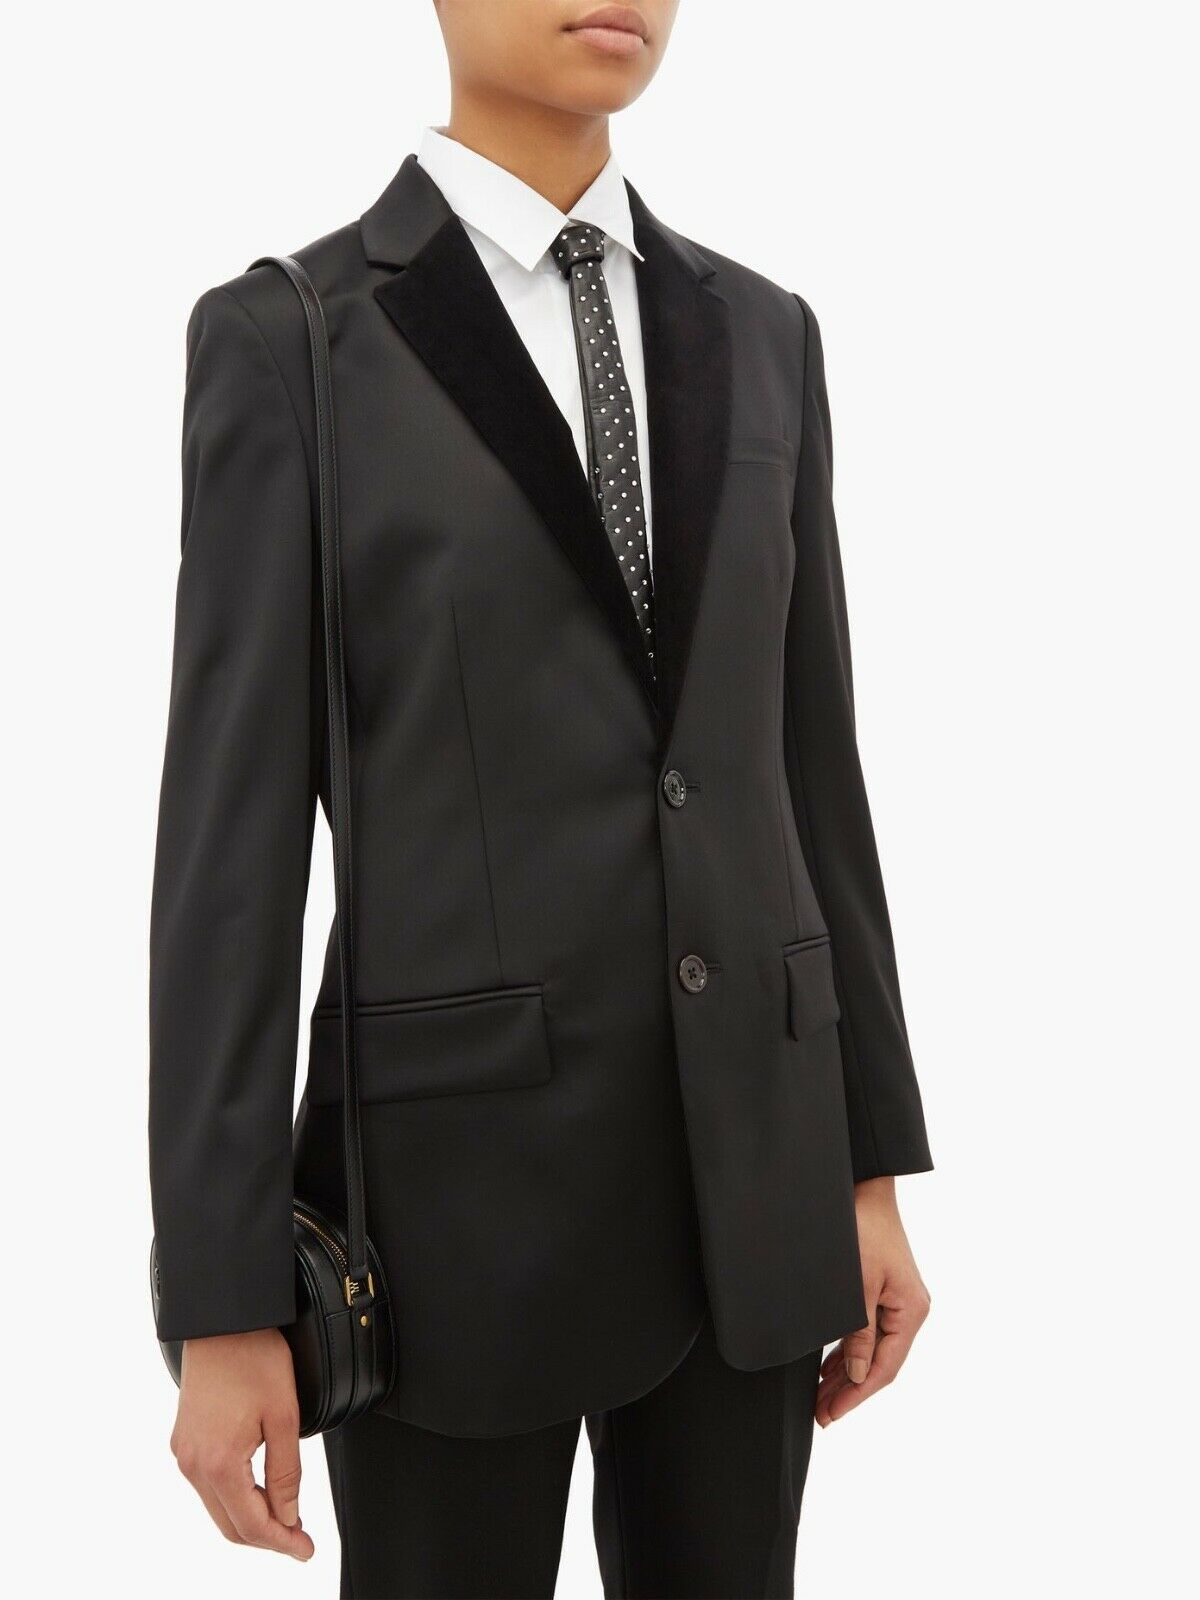 SAINT LAURENT Crystal-Studded Black Leather Tie New in box